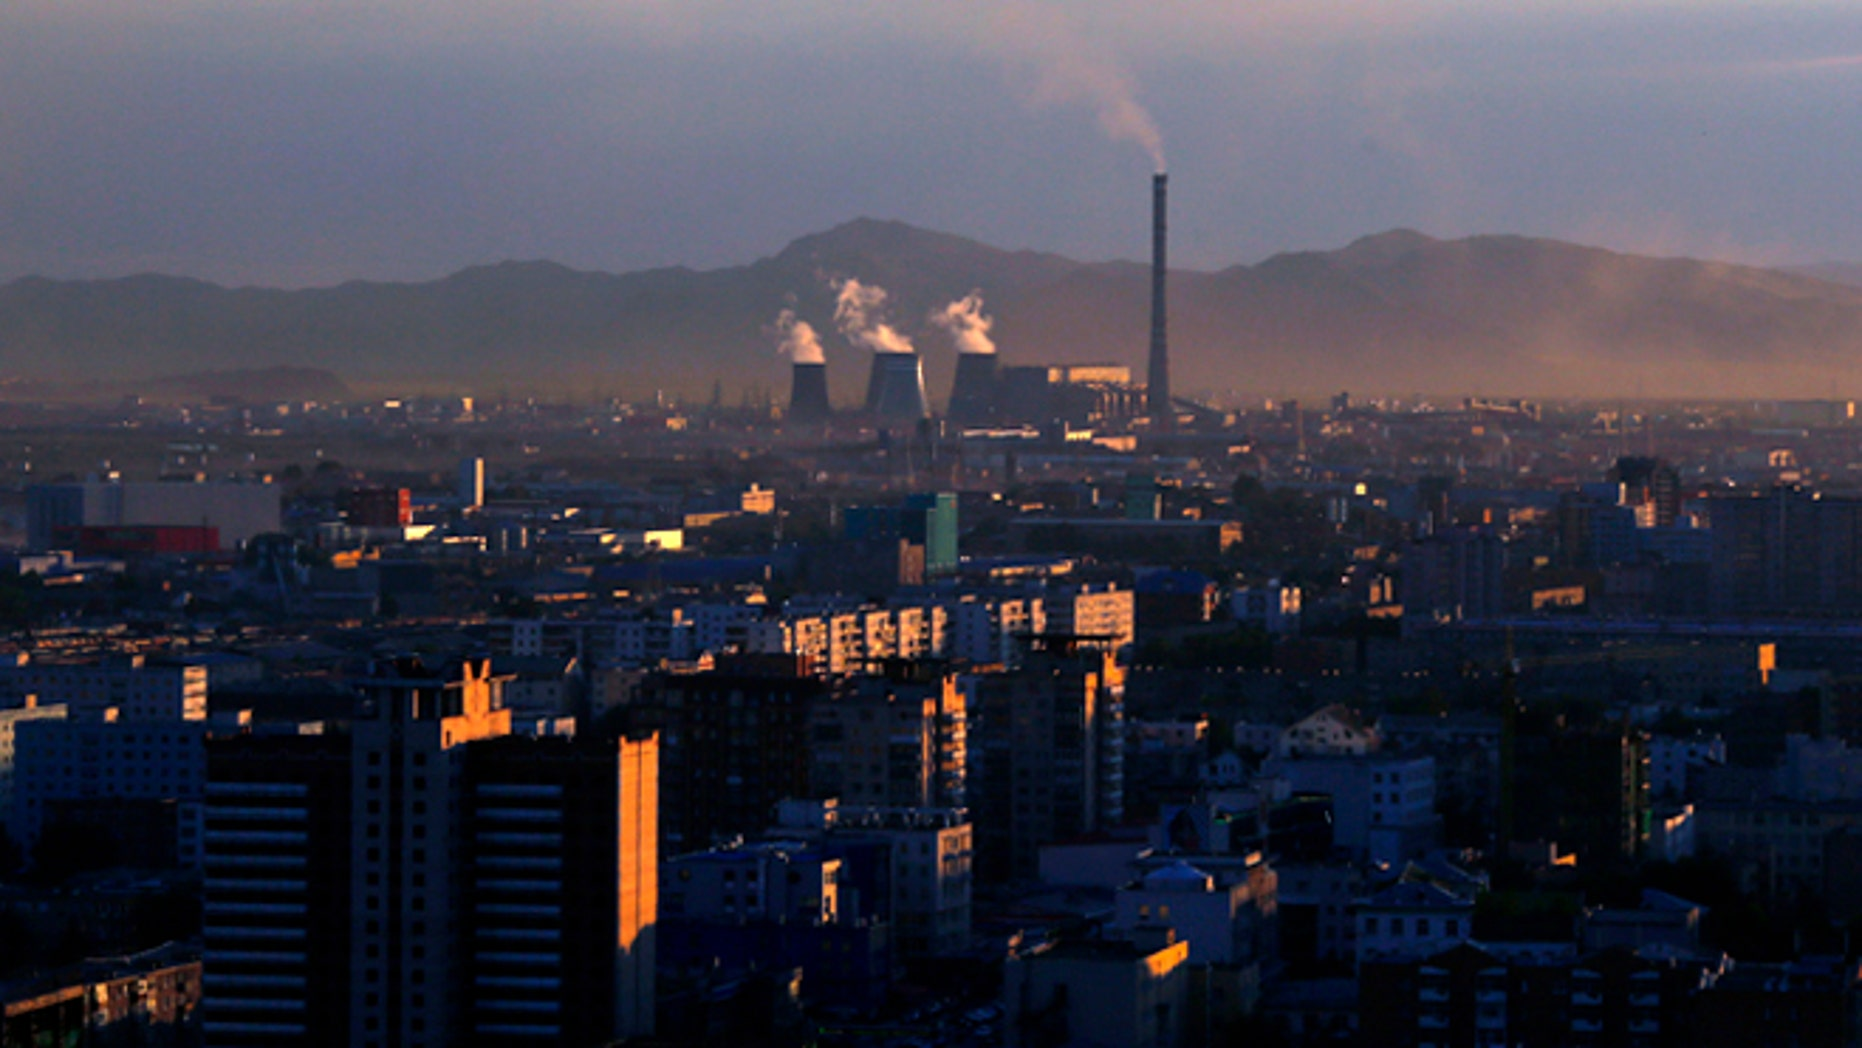 Smoke billows from the chimneys of a coal-burning power plant in Ulan Bator, Mongolia.